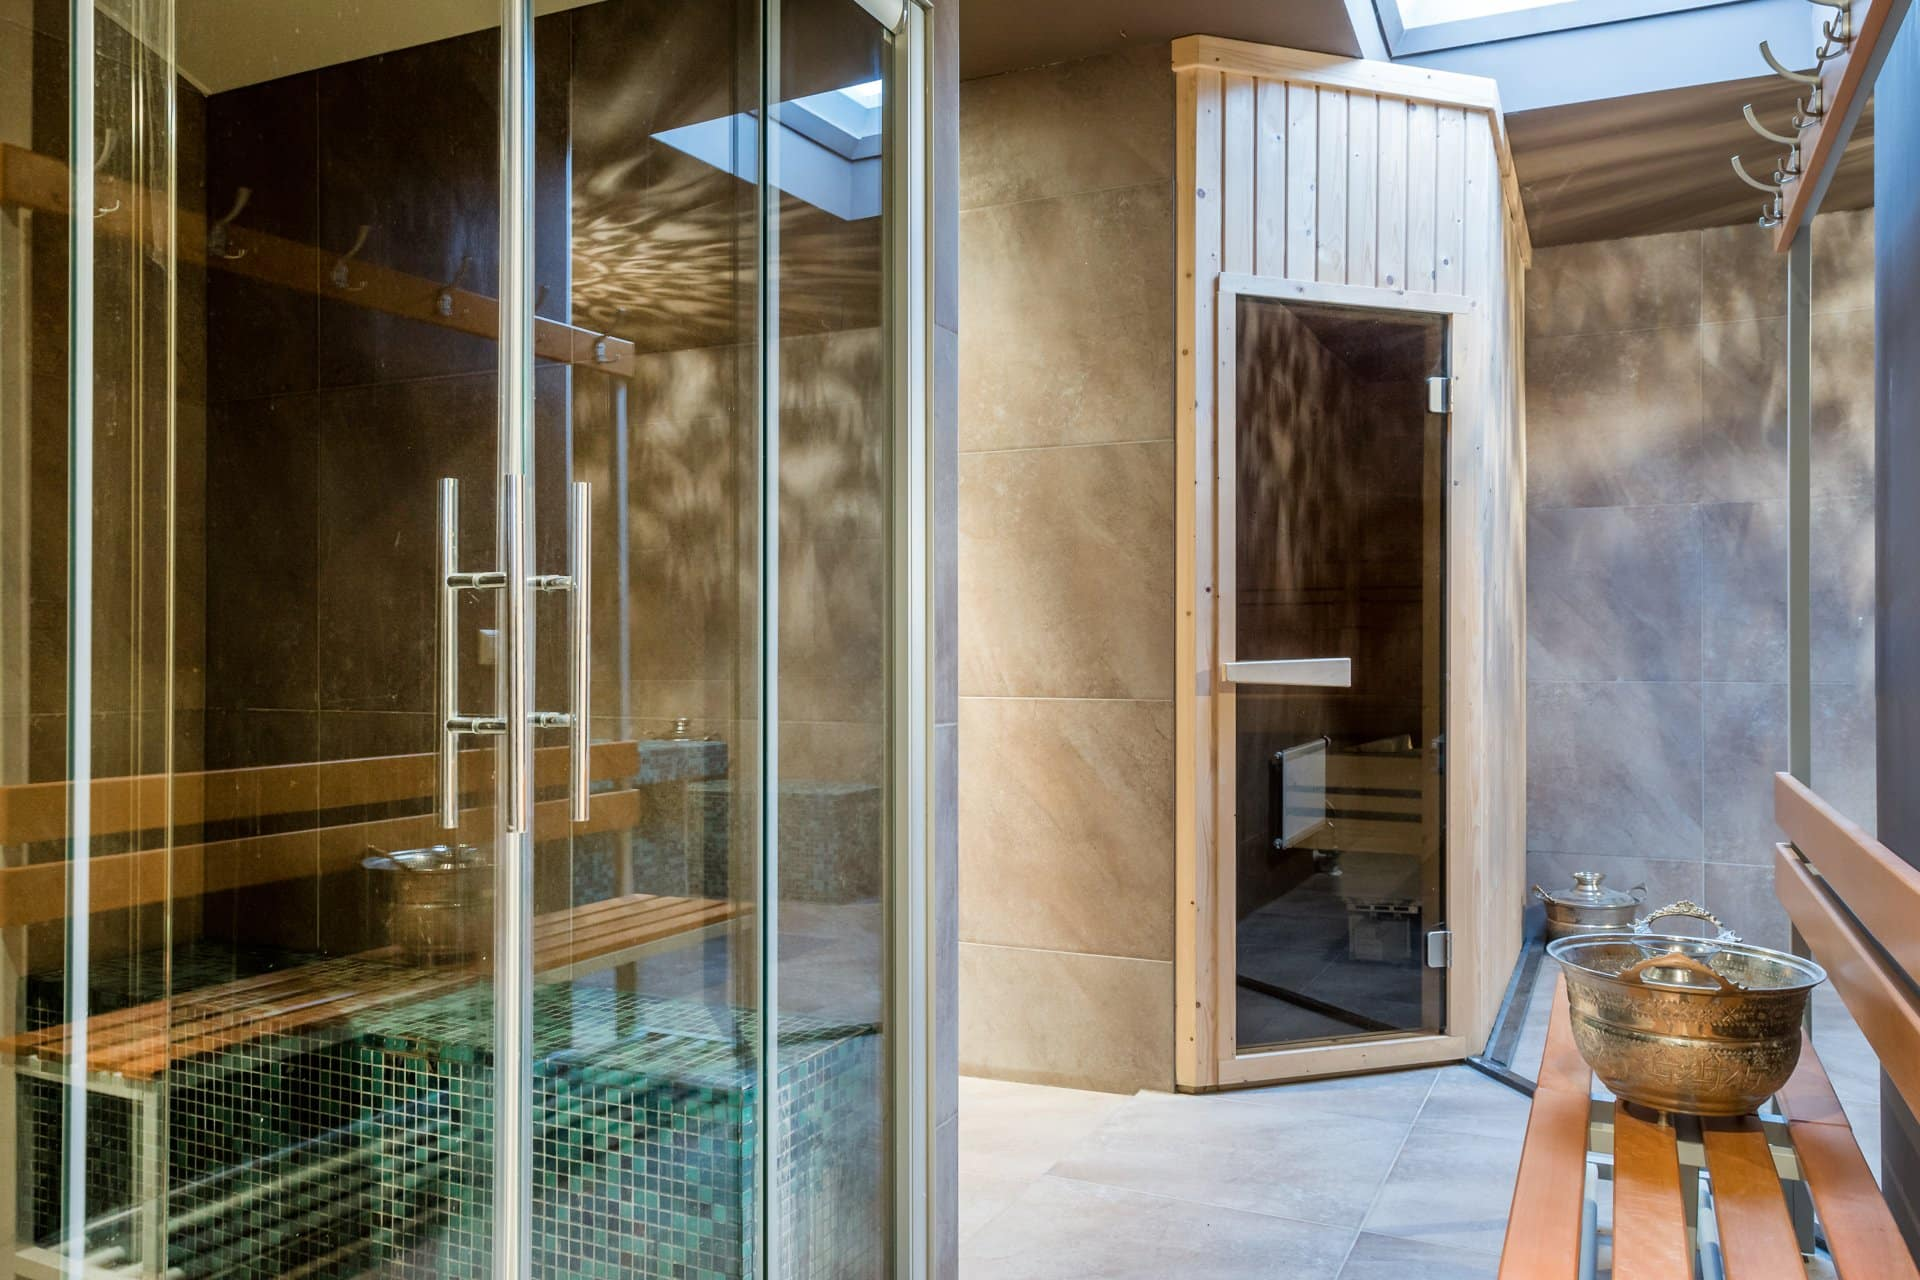 Cryo Beauty Hub - Wellness Center for both Men&Women in Amsterdam